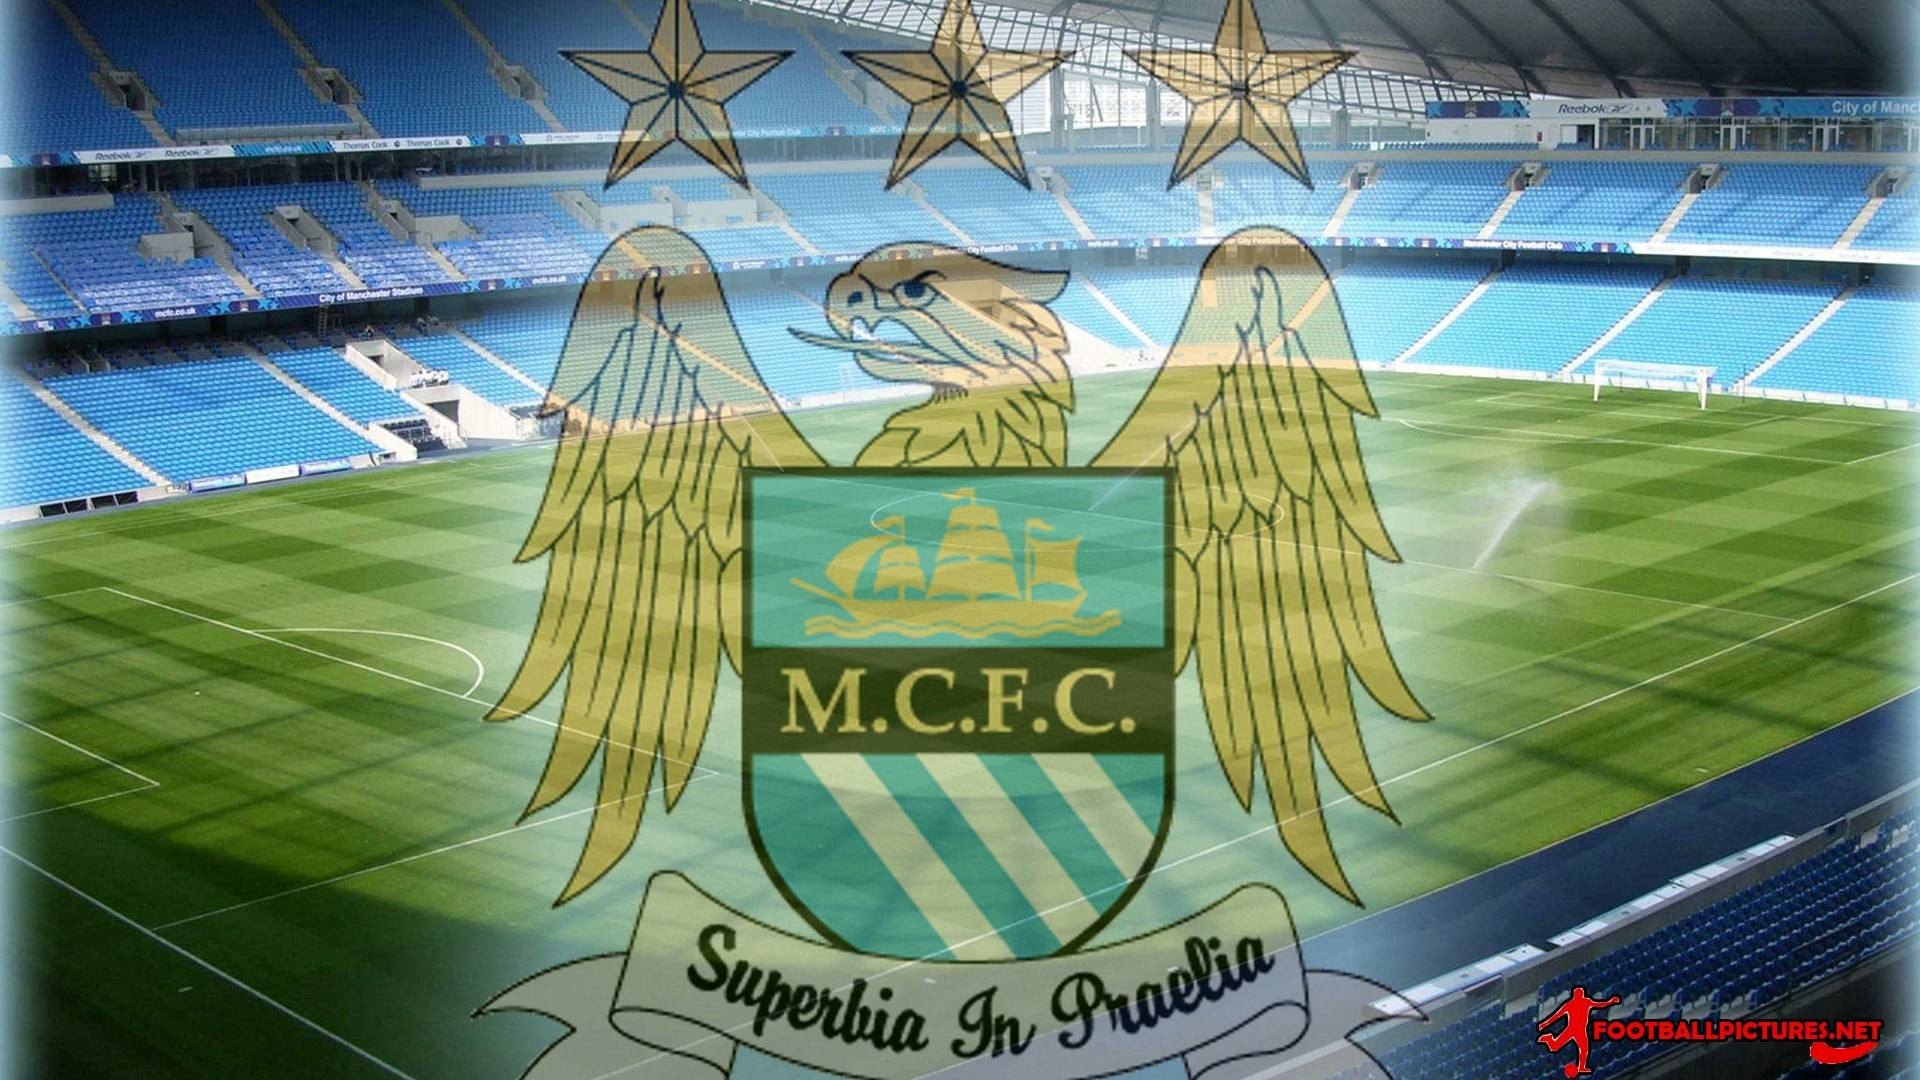 1920x1080 Man City Wallpaper for Bedroom, Mobile, iphone - Hot HD Wallpapers